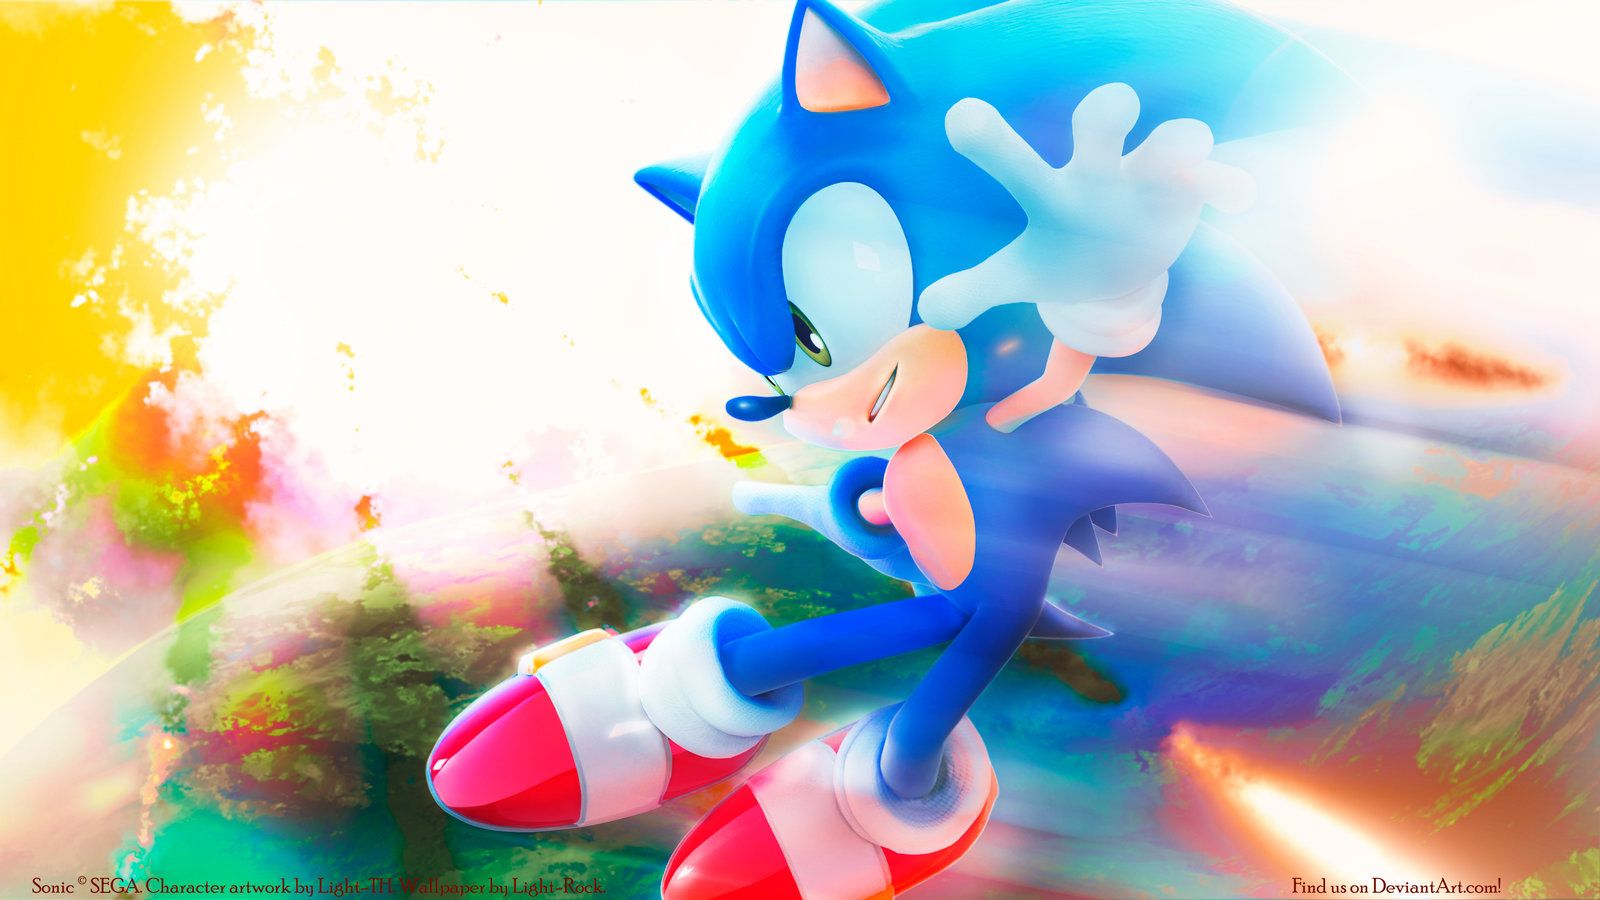 Sonic The Hedgehog Wallpapers By Light Rock On Deviantart Sonic